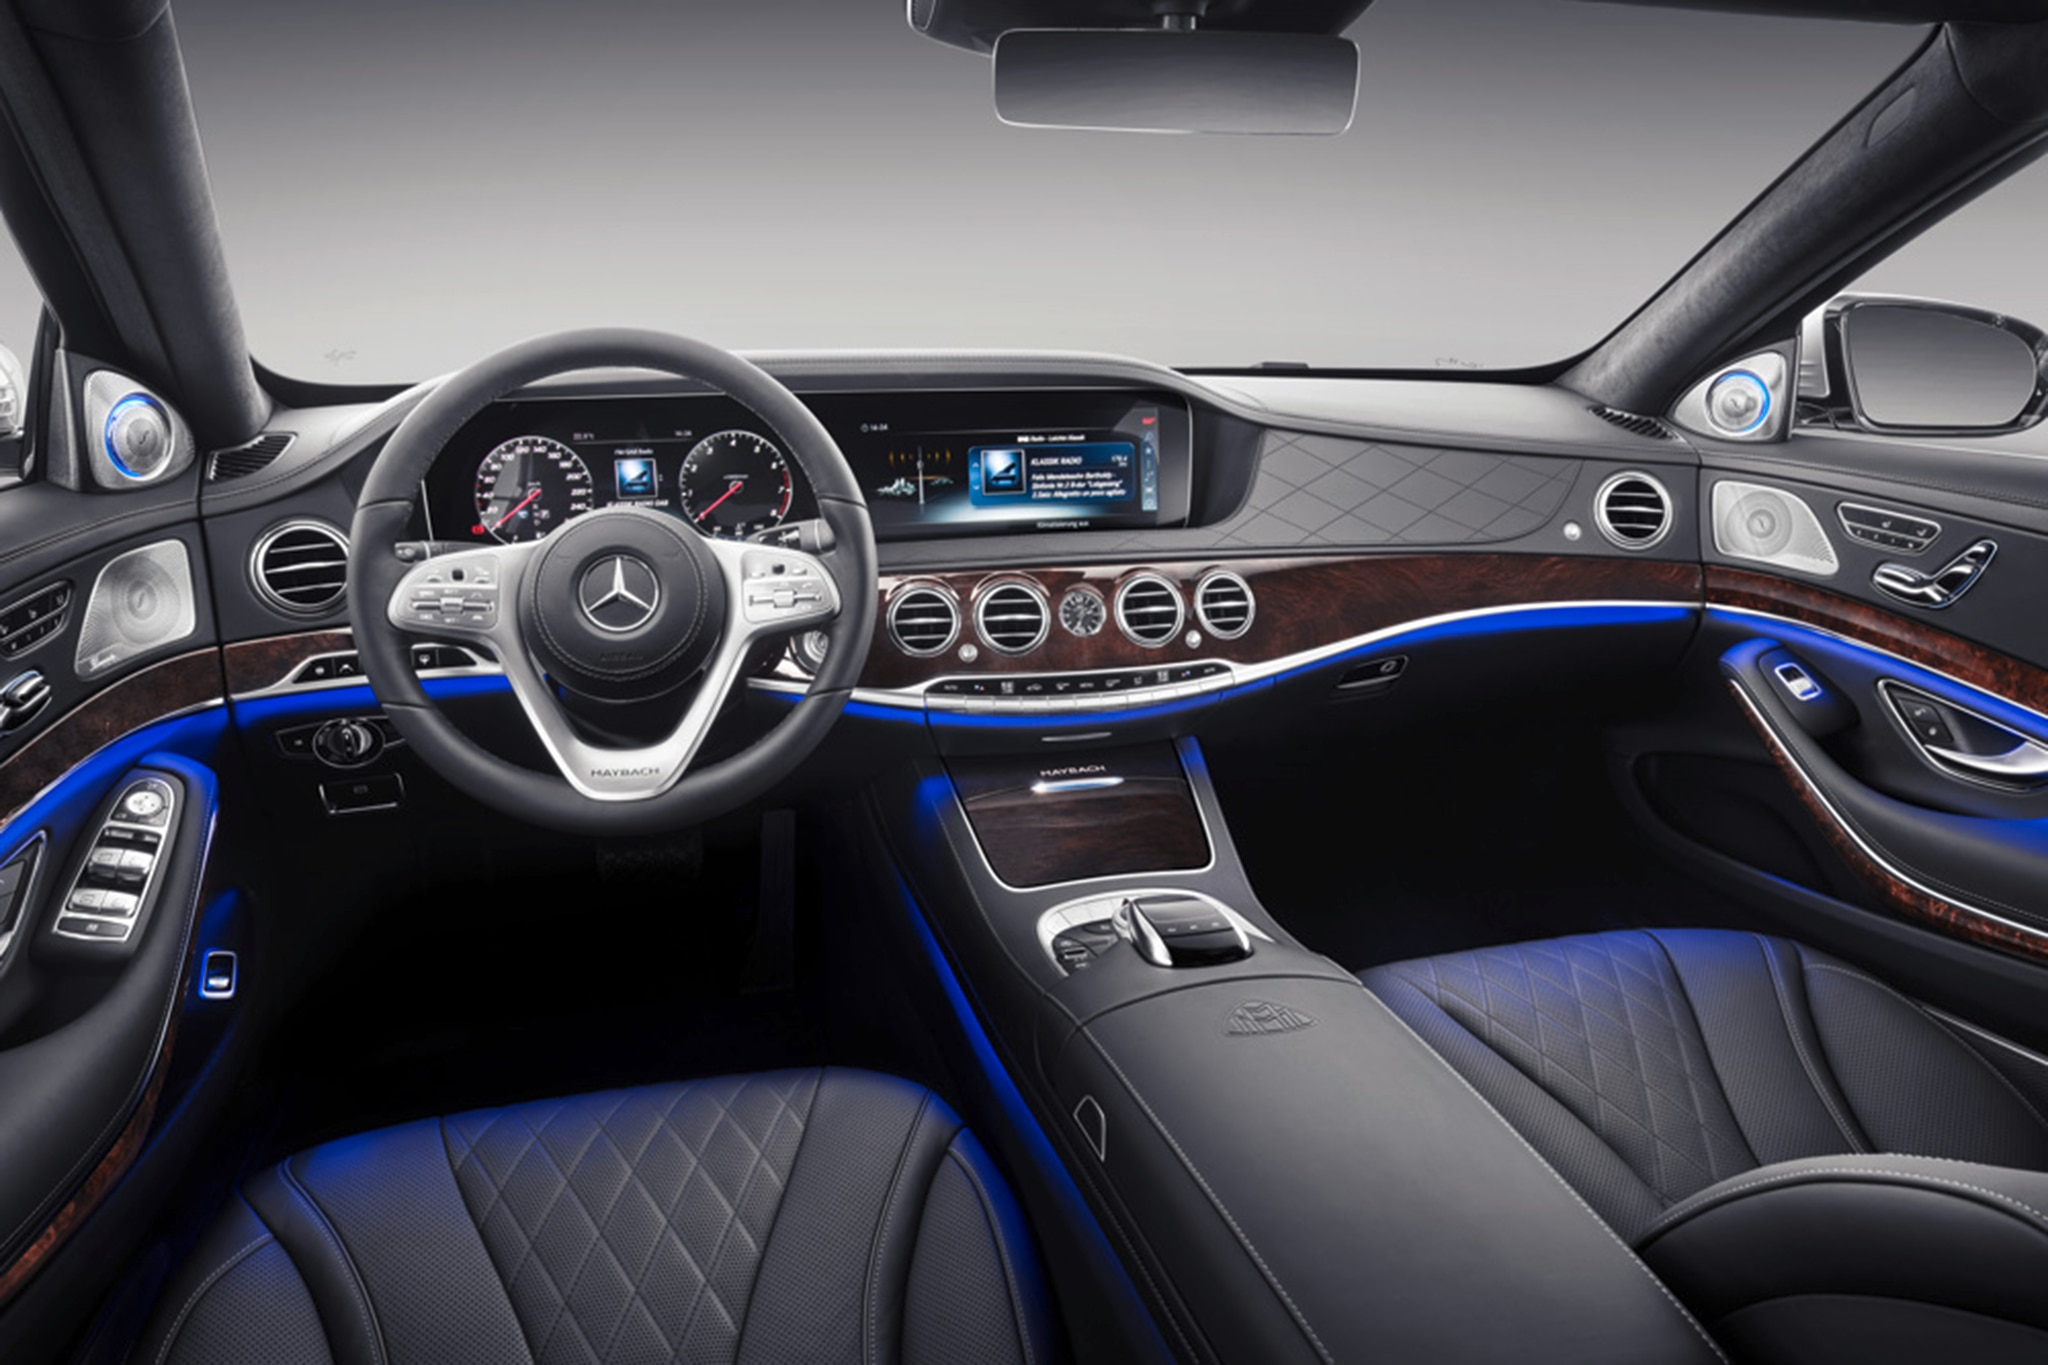 2019 benz s550 2019 Mercedes Maybach S Class Arrives in Style | Automobile Magazine 2019 benz s550